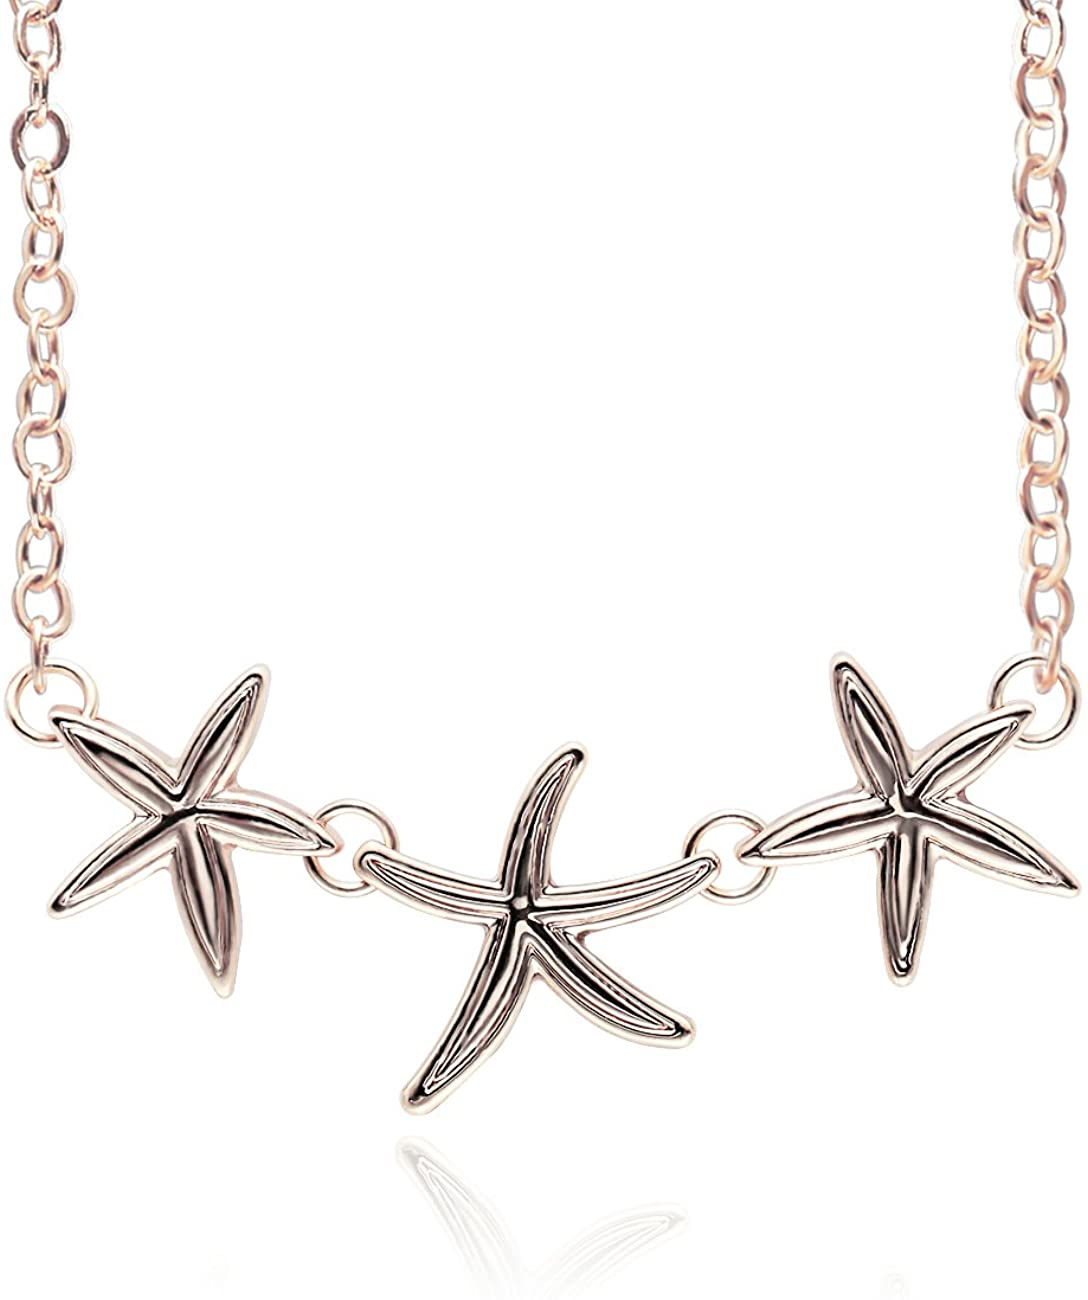 PANGRUI Simple Triple Starfish Sea Stars Pendant Necklace Beach Summer Jewelry,Seaside Holiday Fresh Style Romantic Necklace